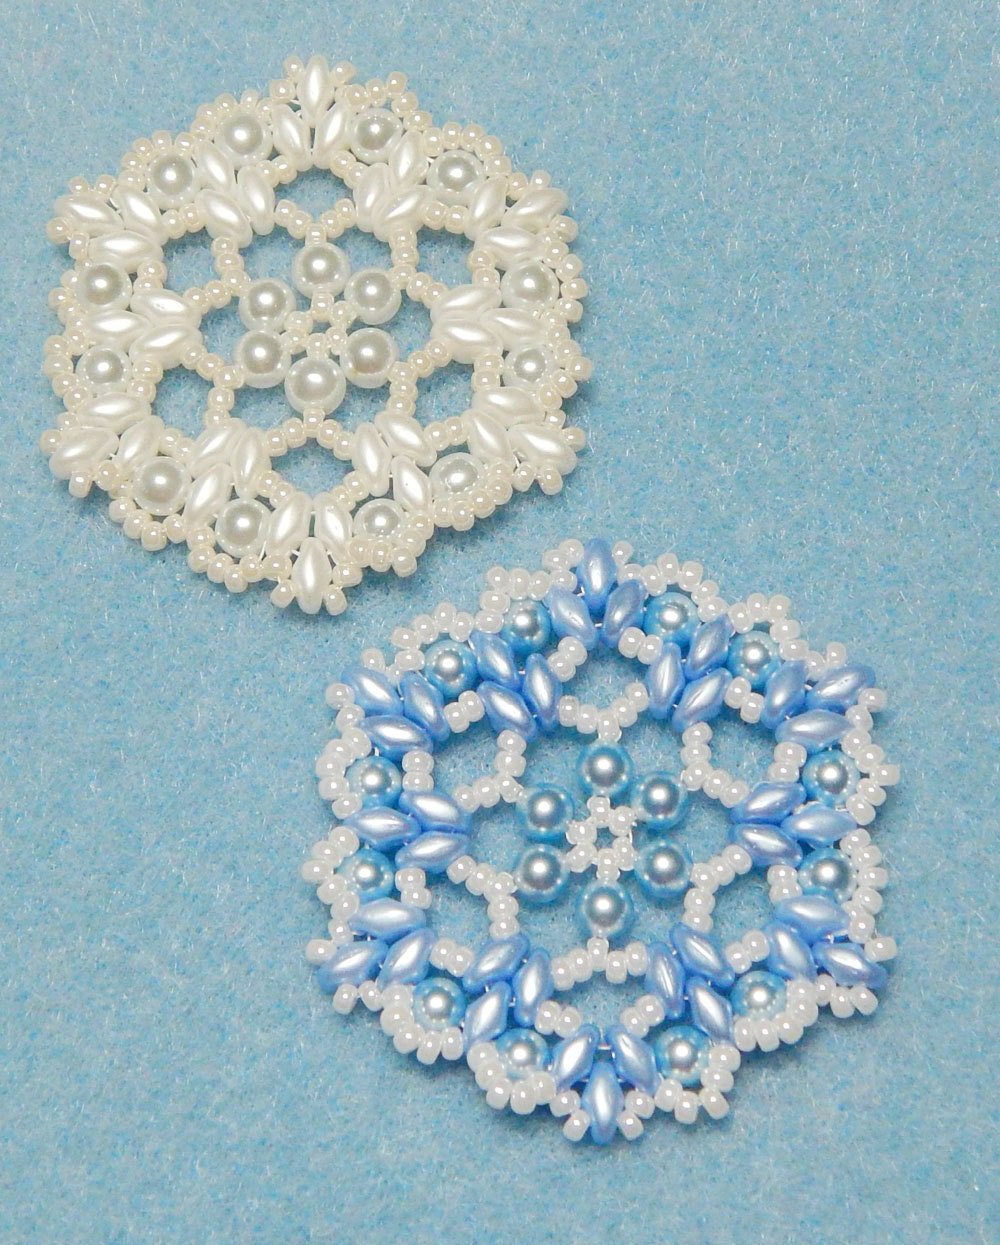 Snowflake 6 Beaded Ornament Pattern By Westtexasjewels On Etsy